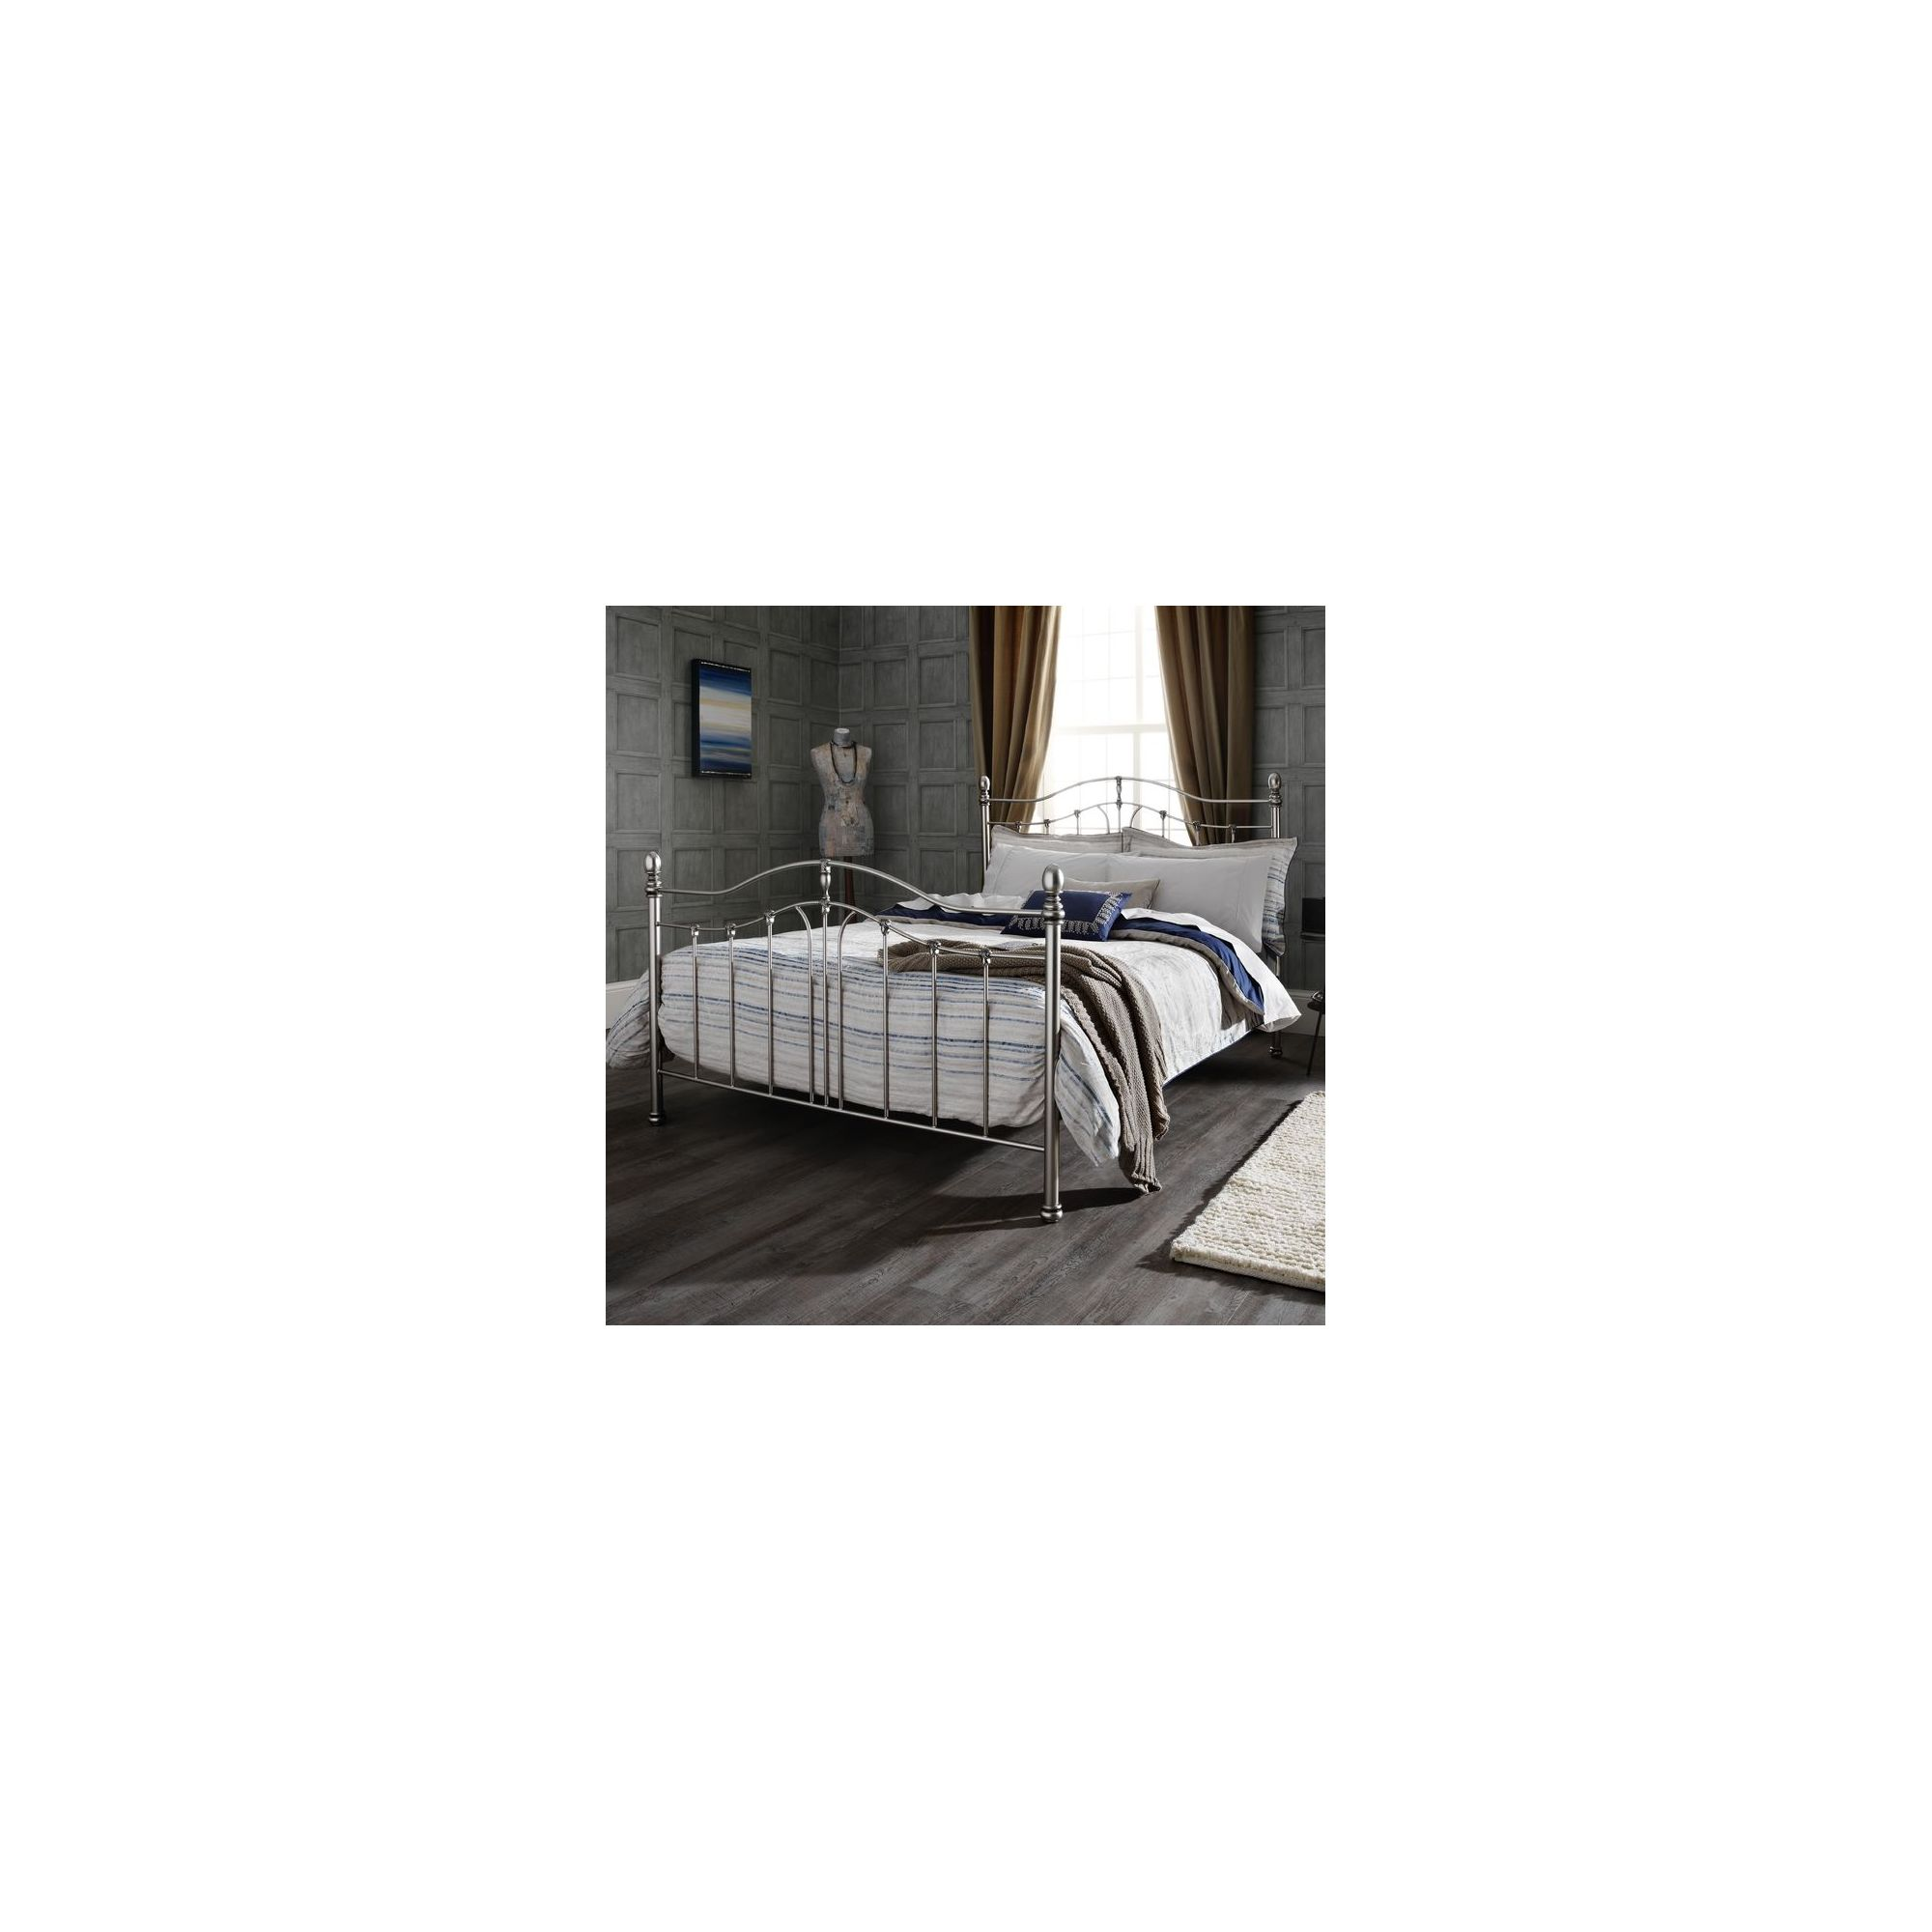 Serene Furnishings Camilla Bed Frame - King - Antique Brass at Tesco Direct